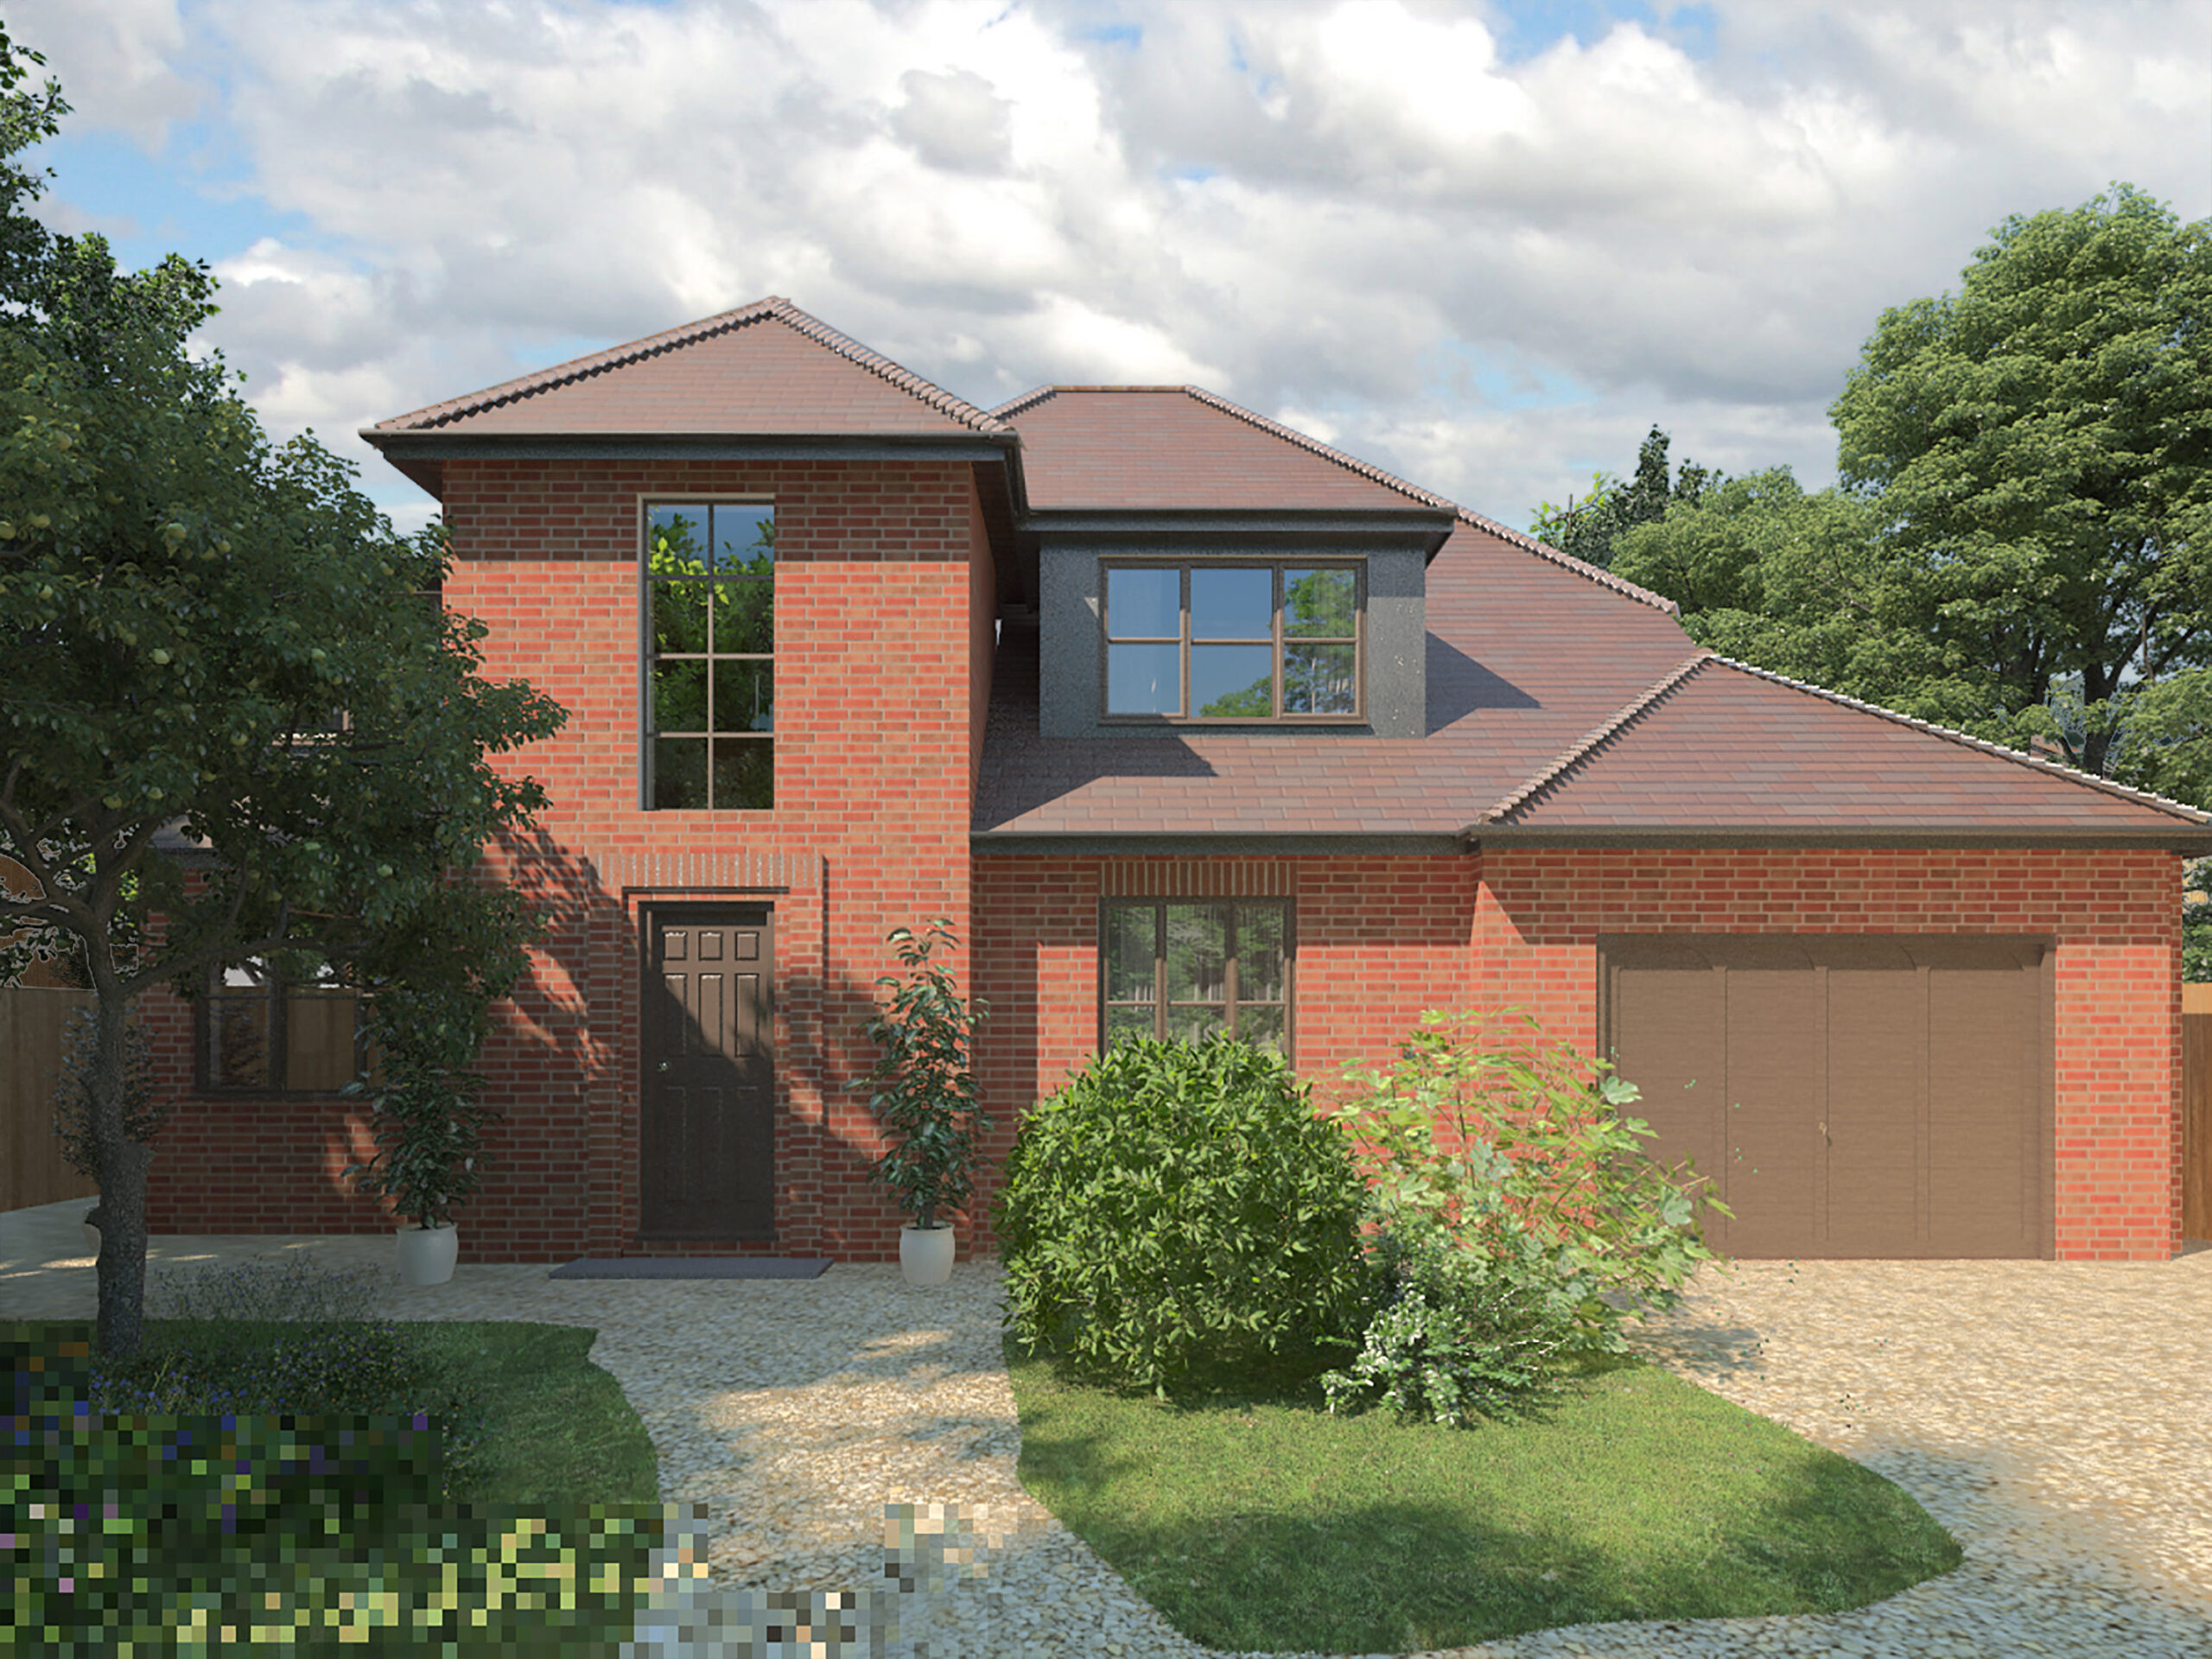 Architects in Barnet - New Build Architects image